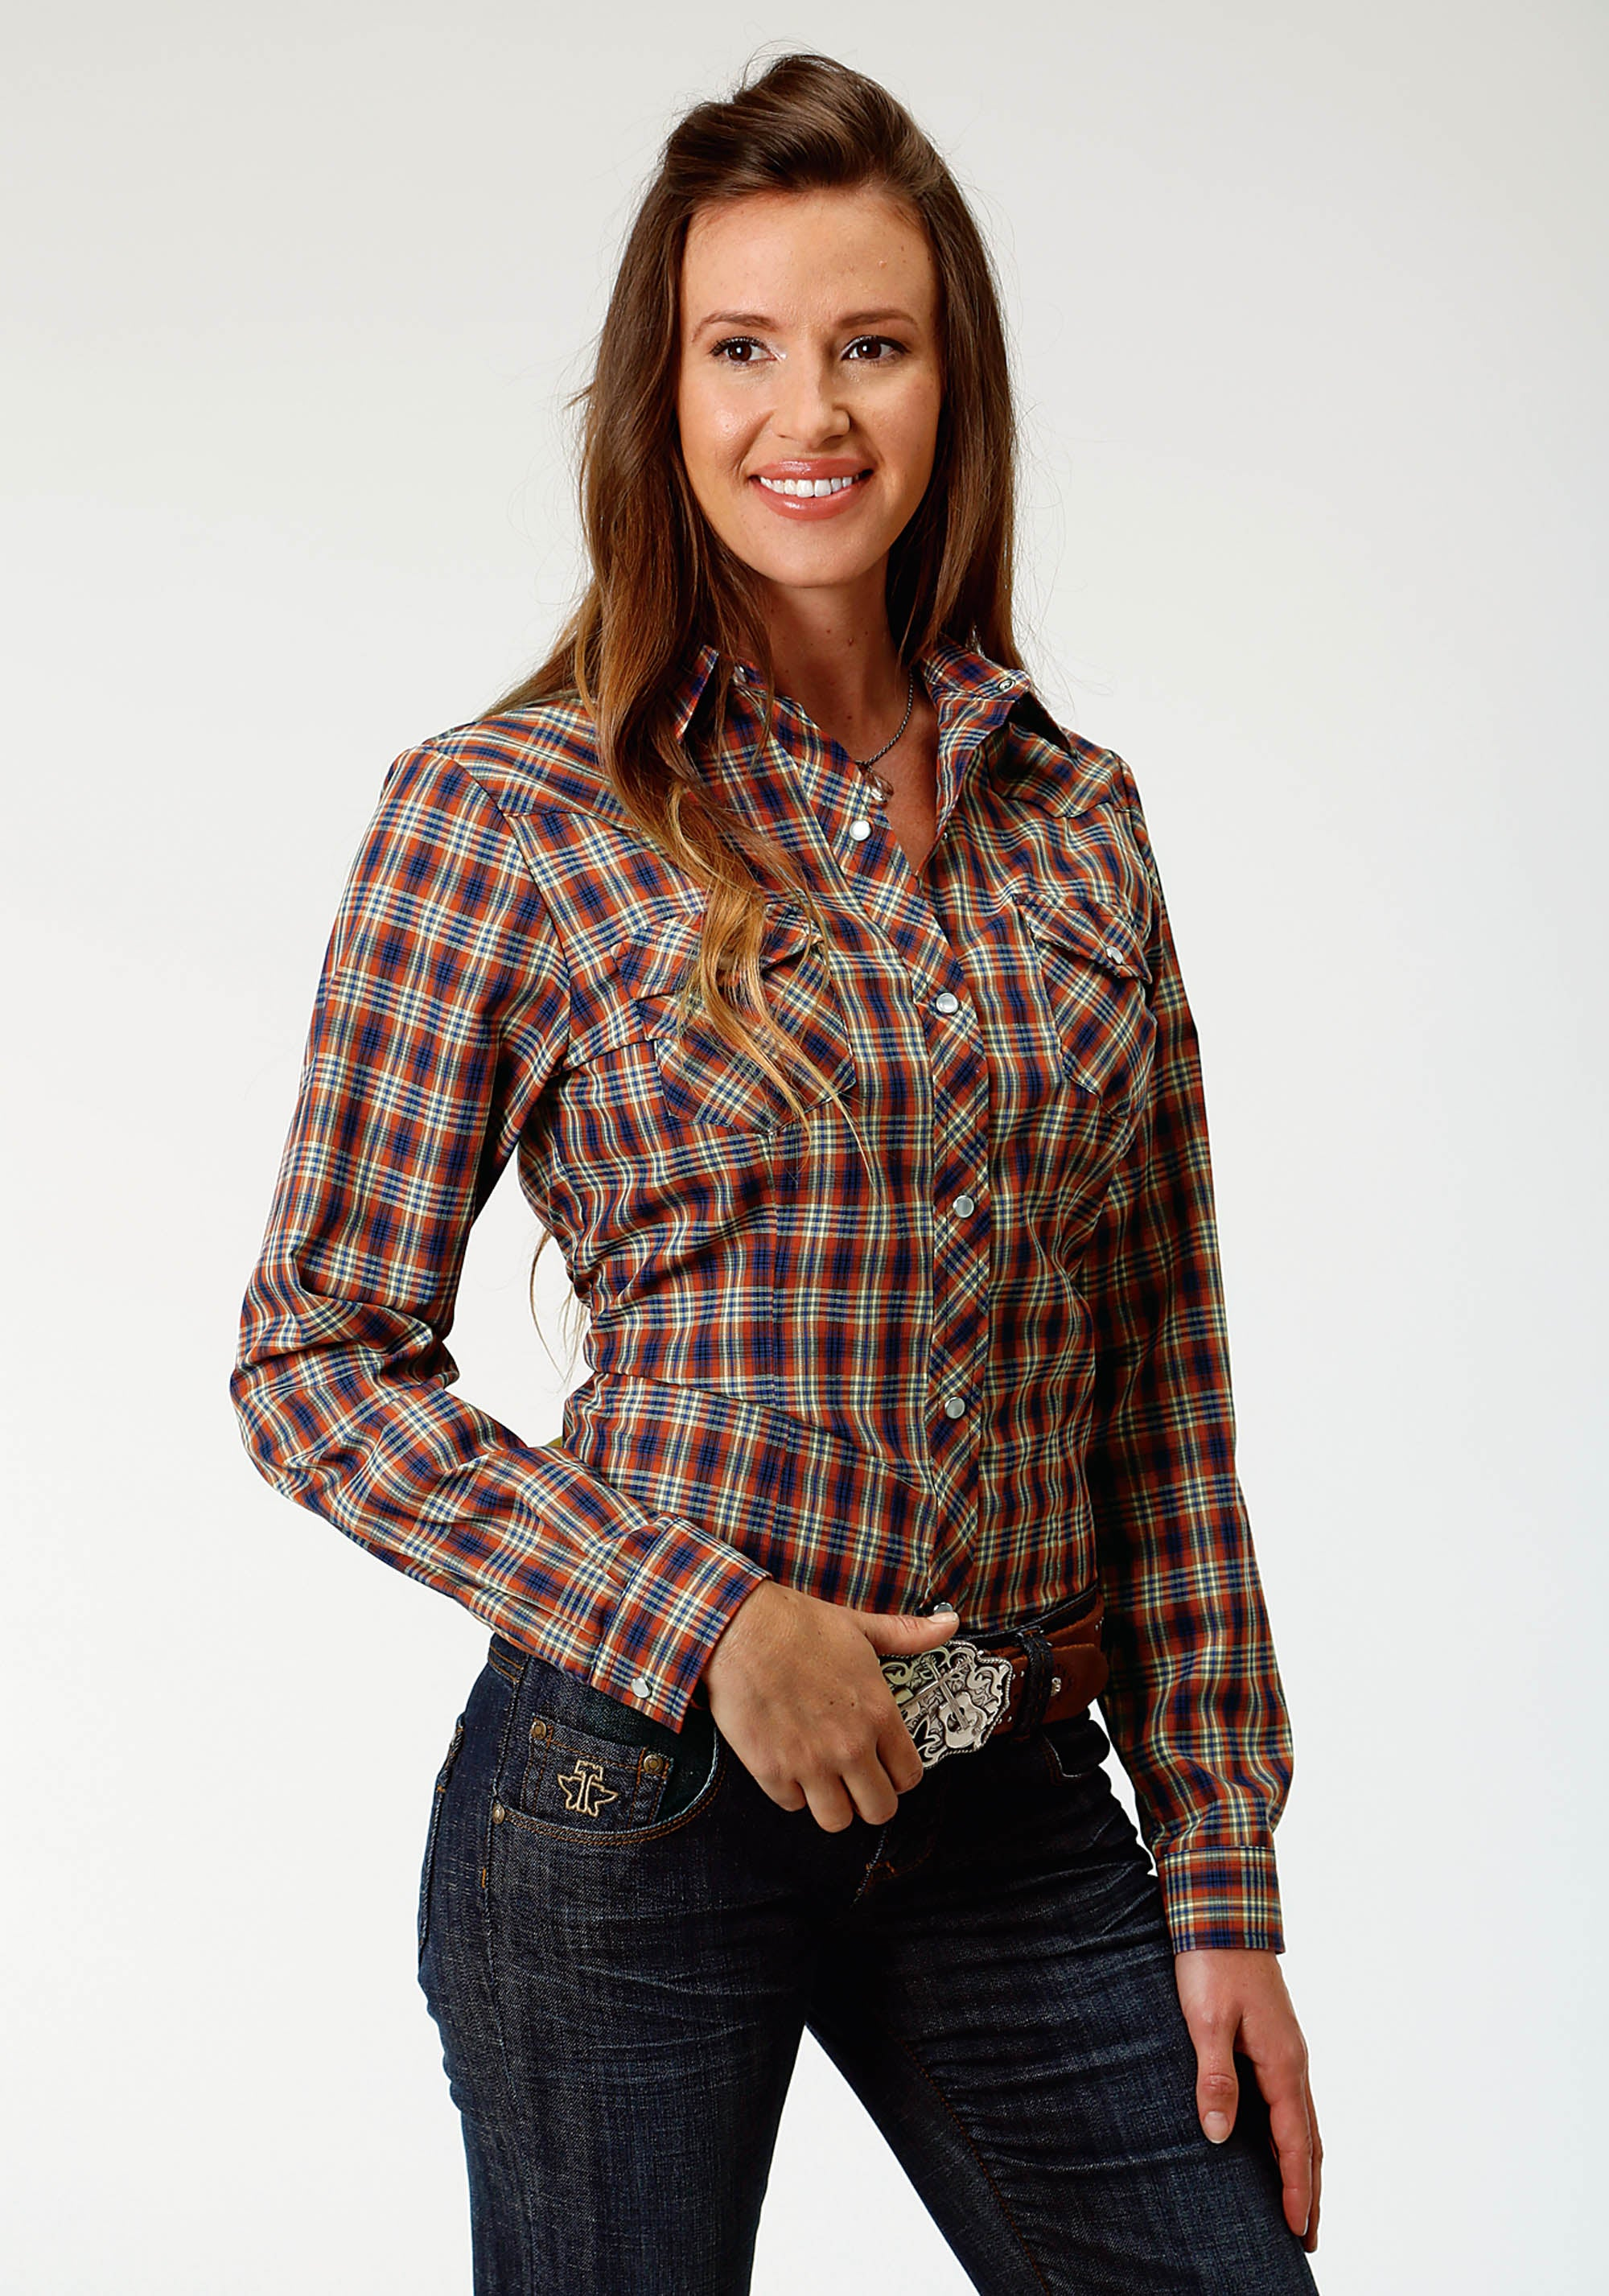 ROPER WOMENS RUST 3642 RUST & NAVY PLAID KARMAN CLASSICS- 55/45 PLAID LONG SLEEVE